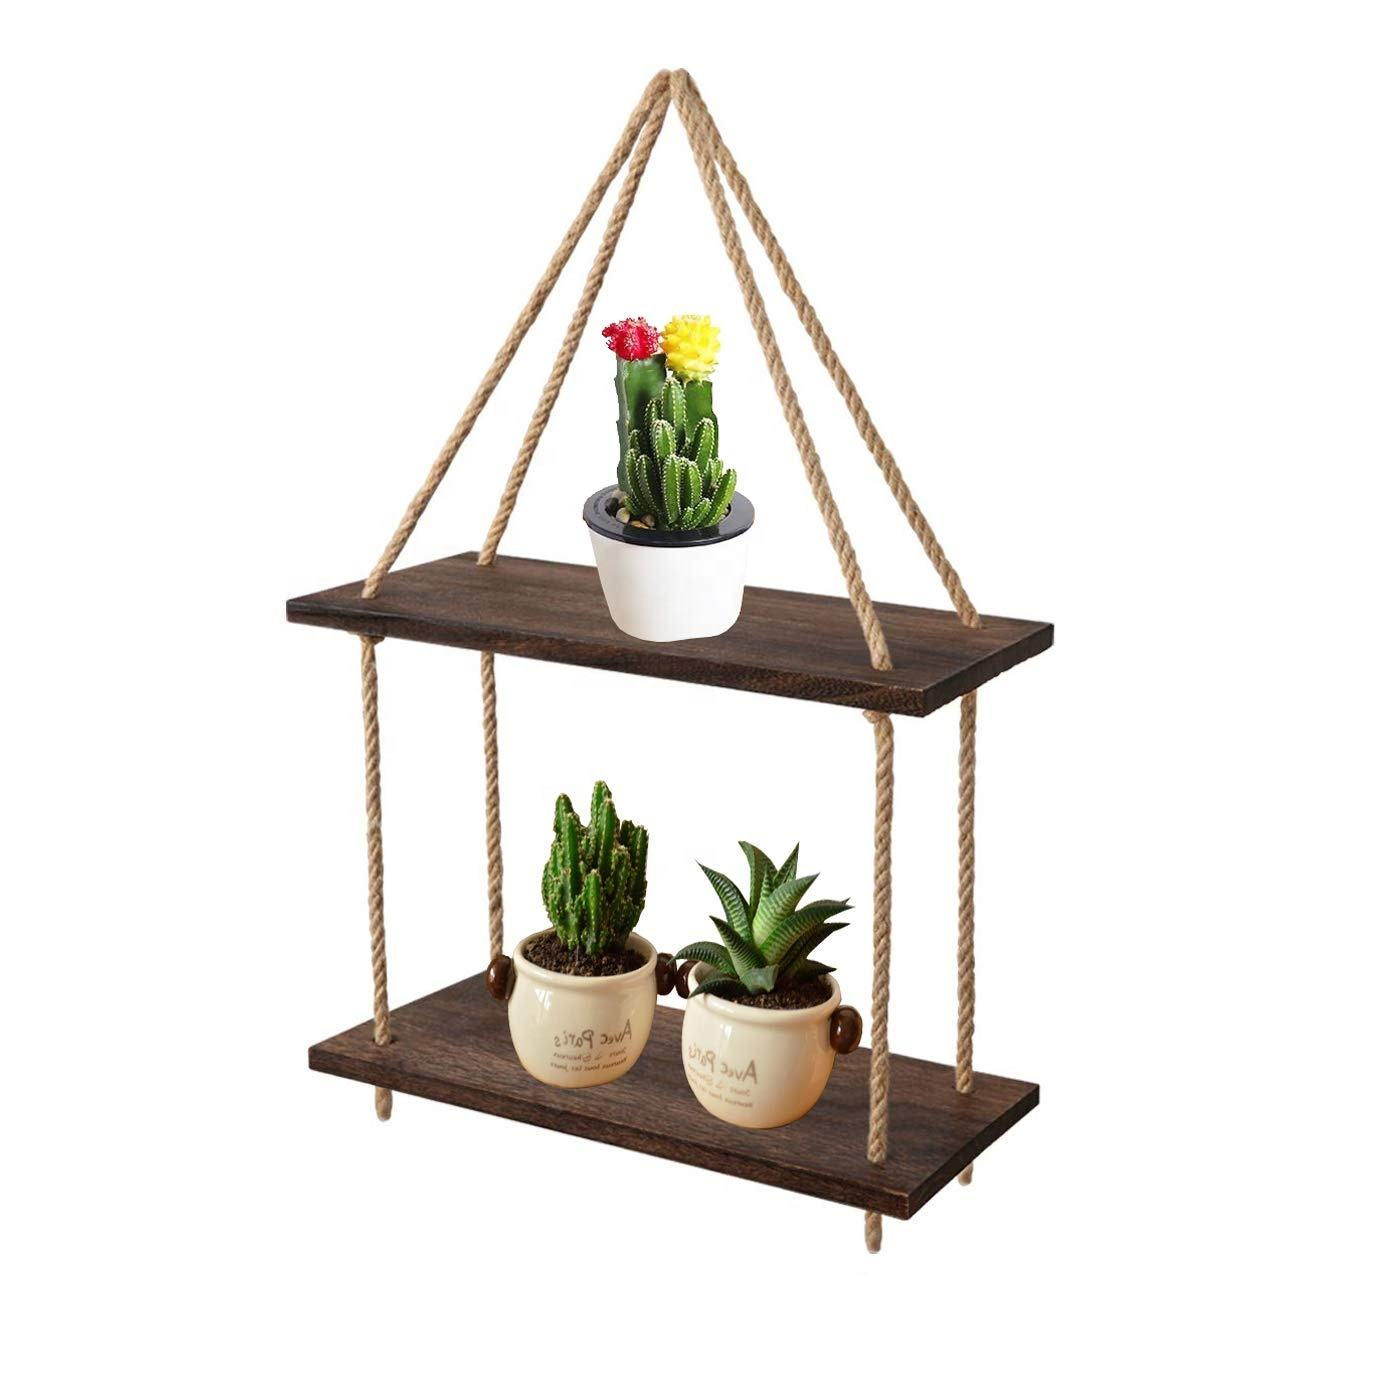 decoration display of country house shelf, suitable for garden, outdoor 2 floors swing rope shelves floating wall